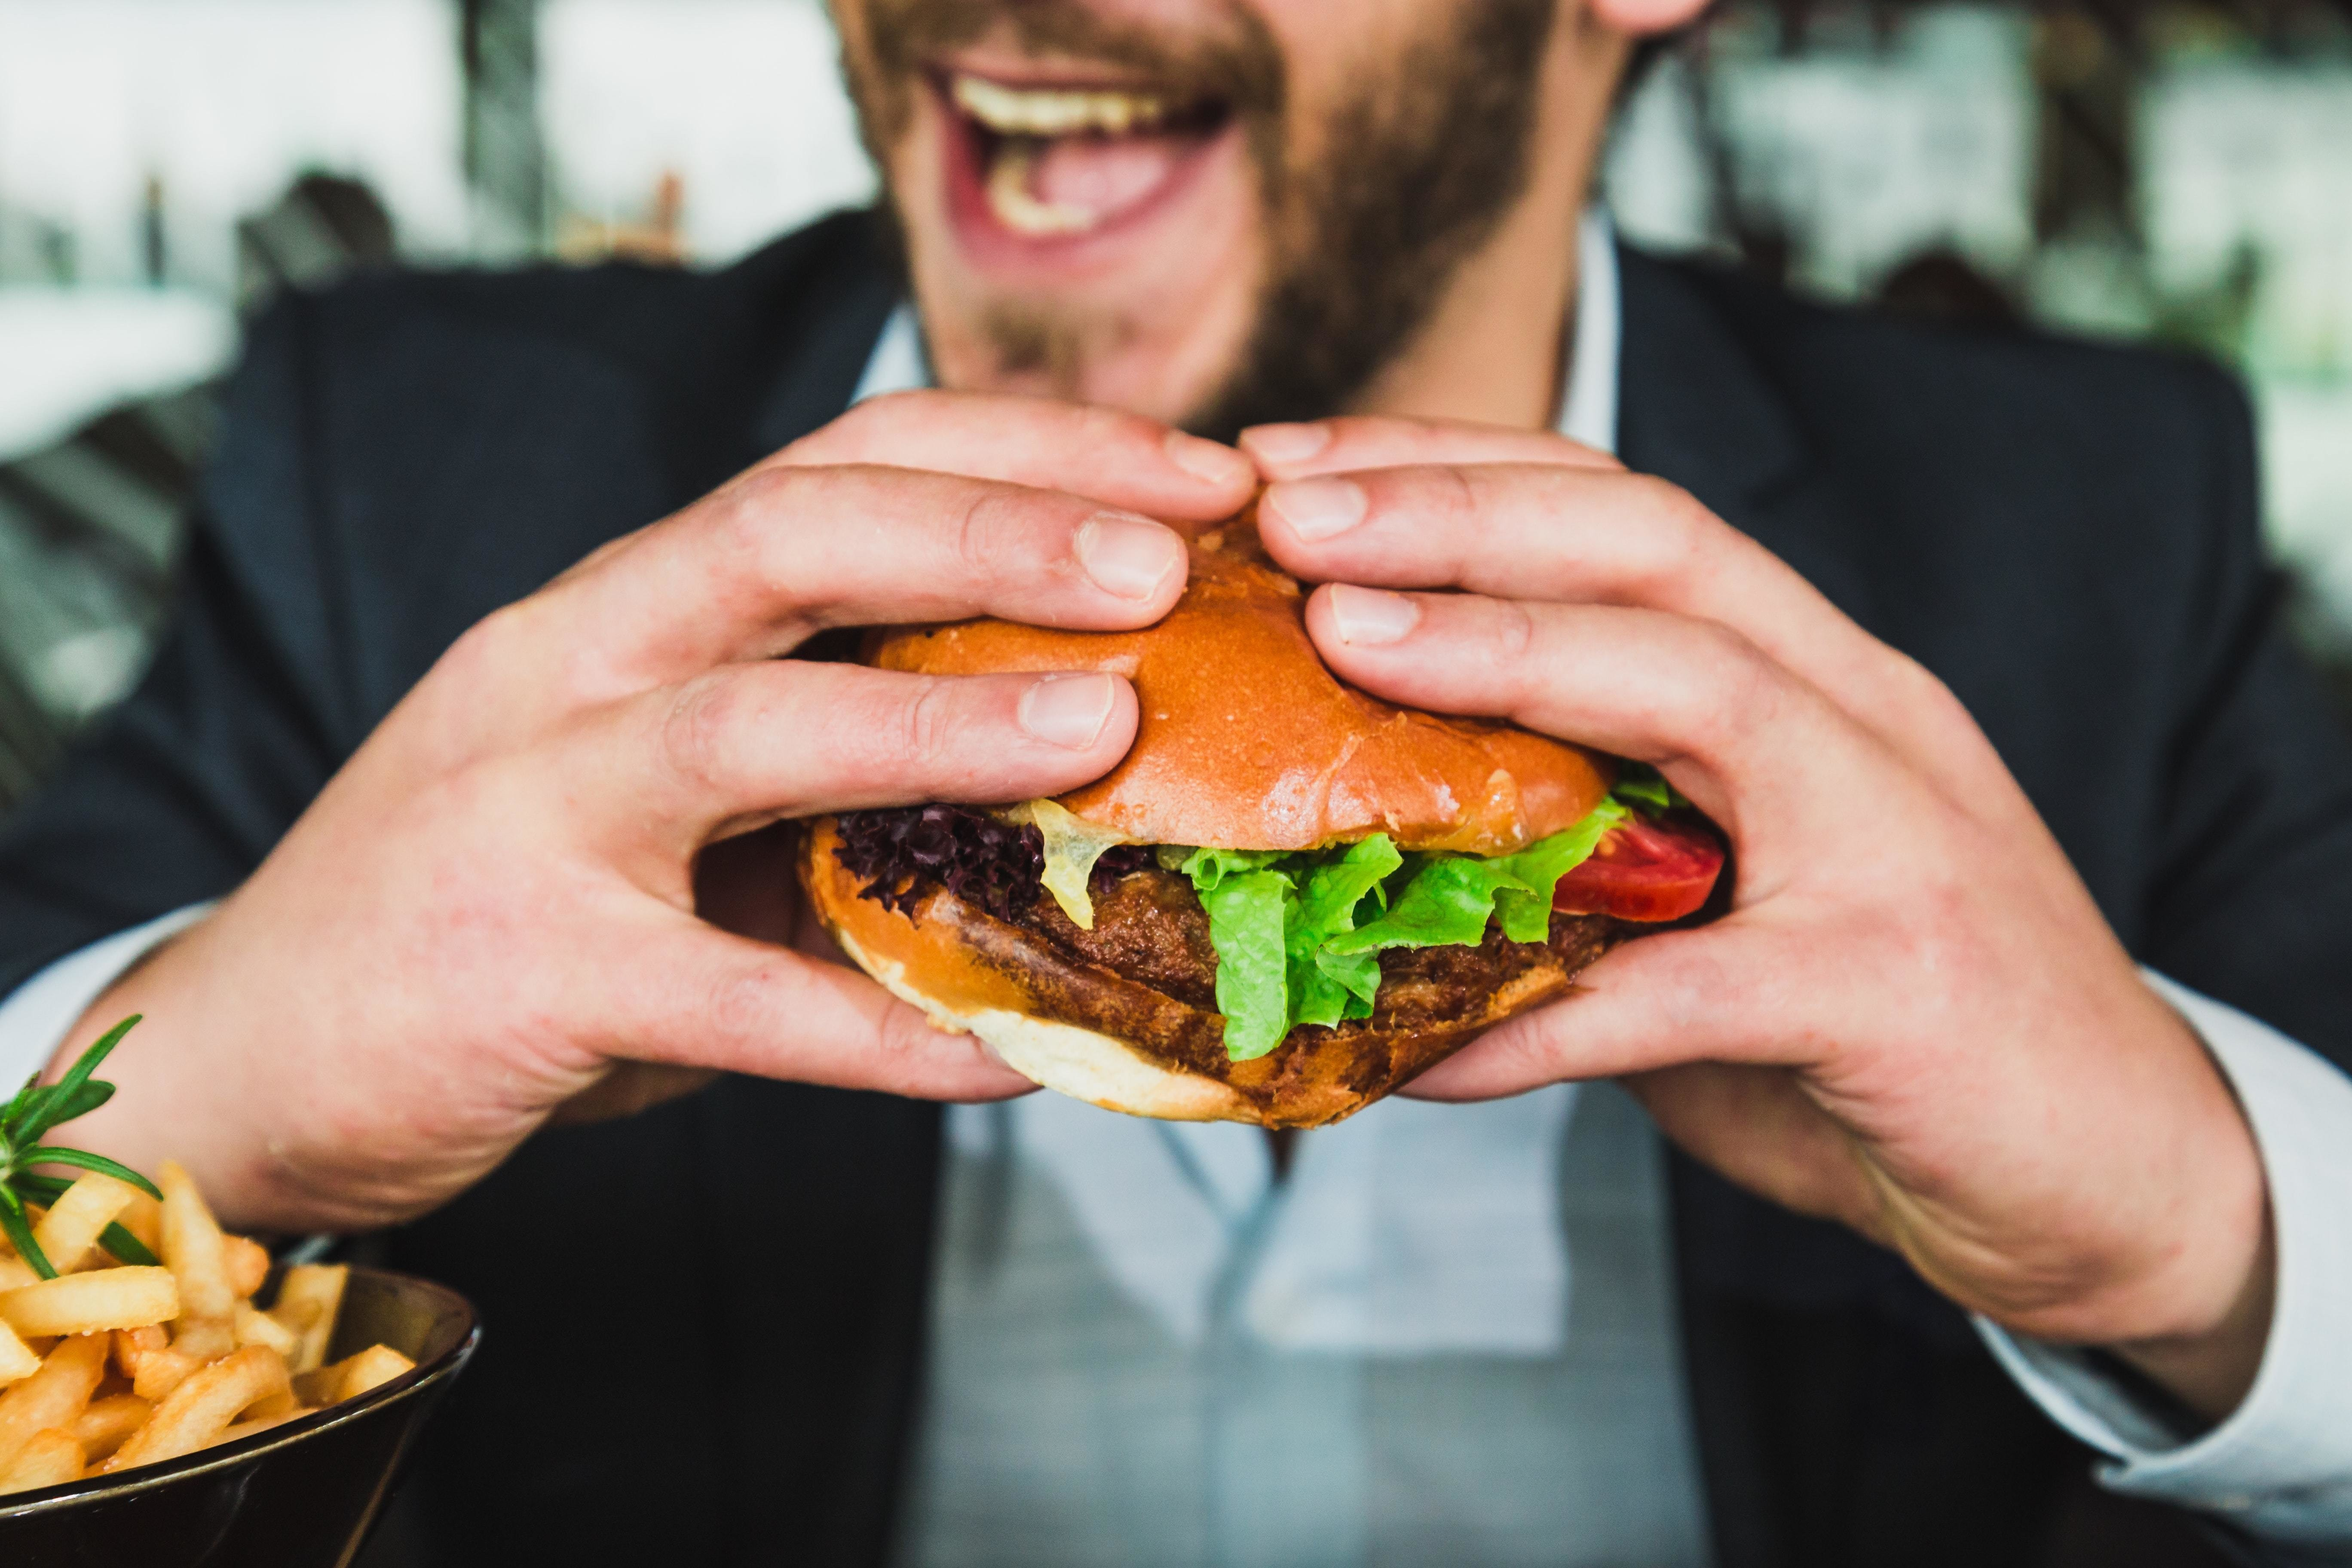 A picture of a man hold a big yummy burger about to bite into it, as a study reveals how we make food choices.